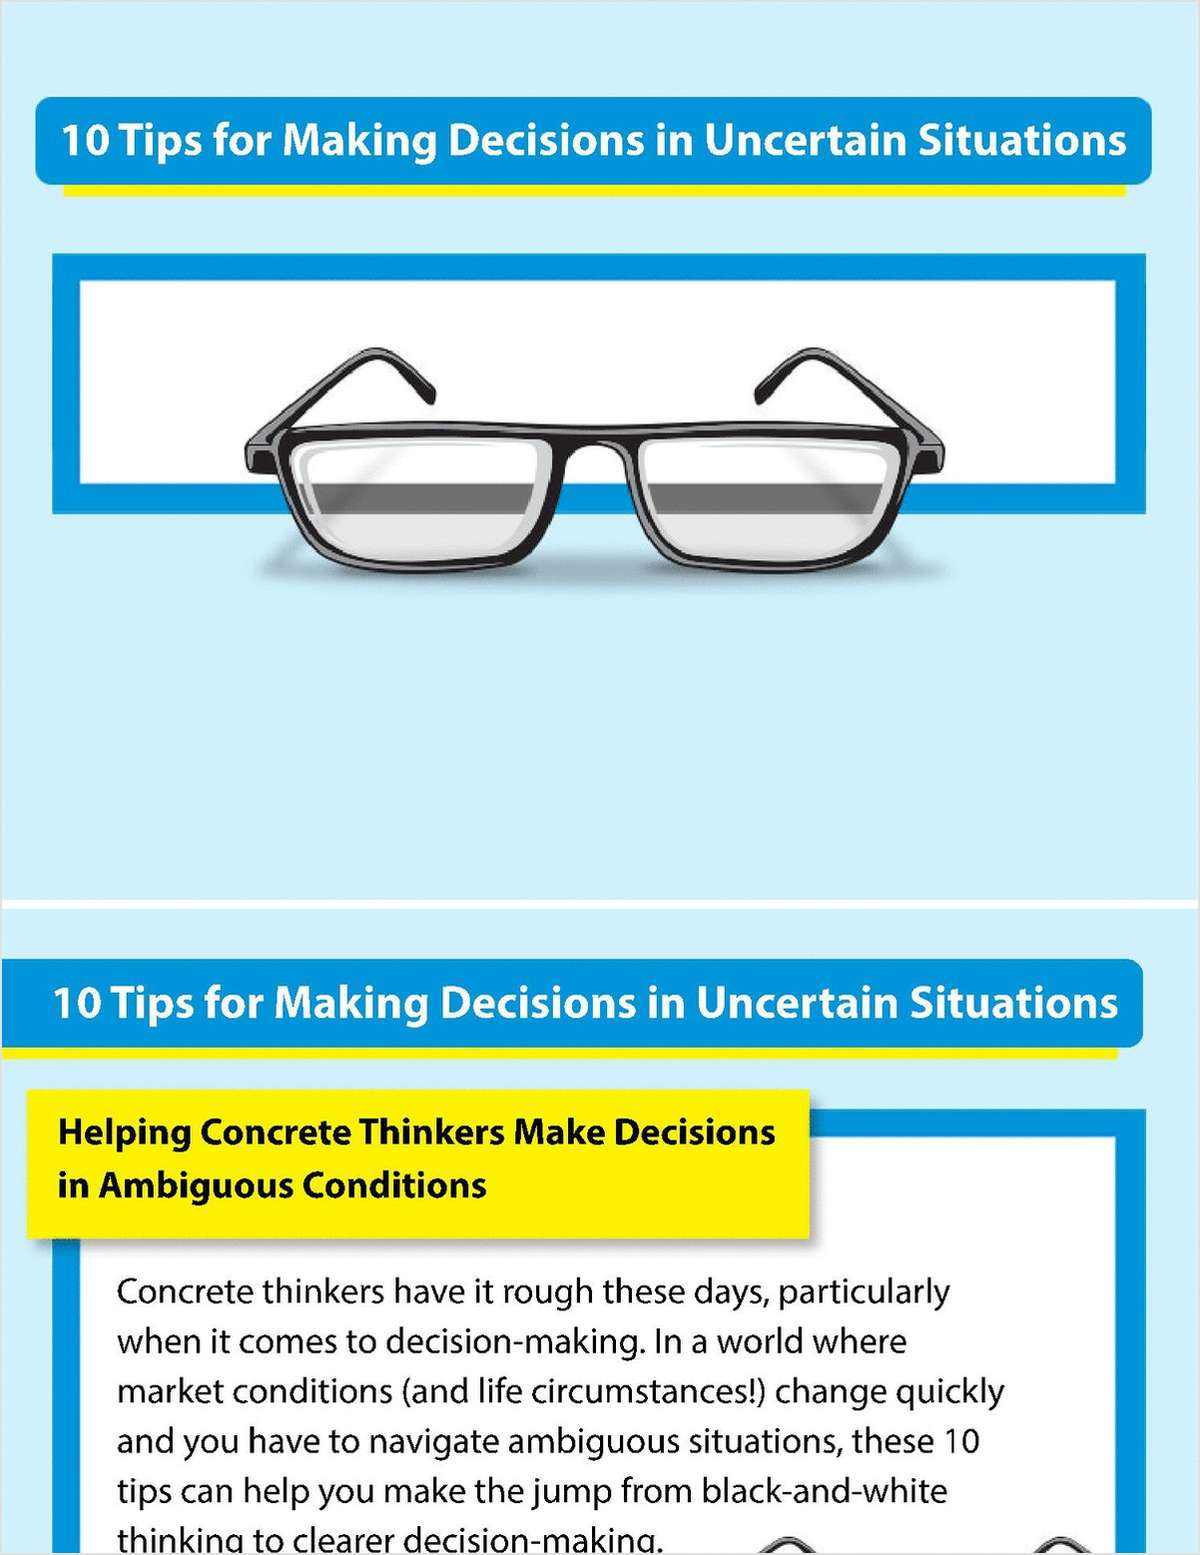 10 Tips for Making Decisions in Uncertain Situations